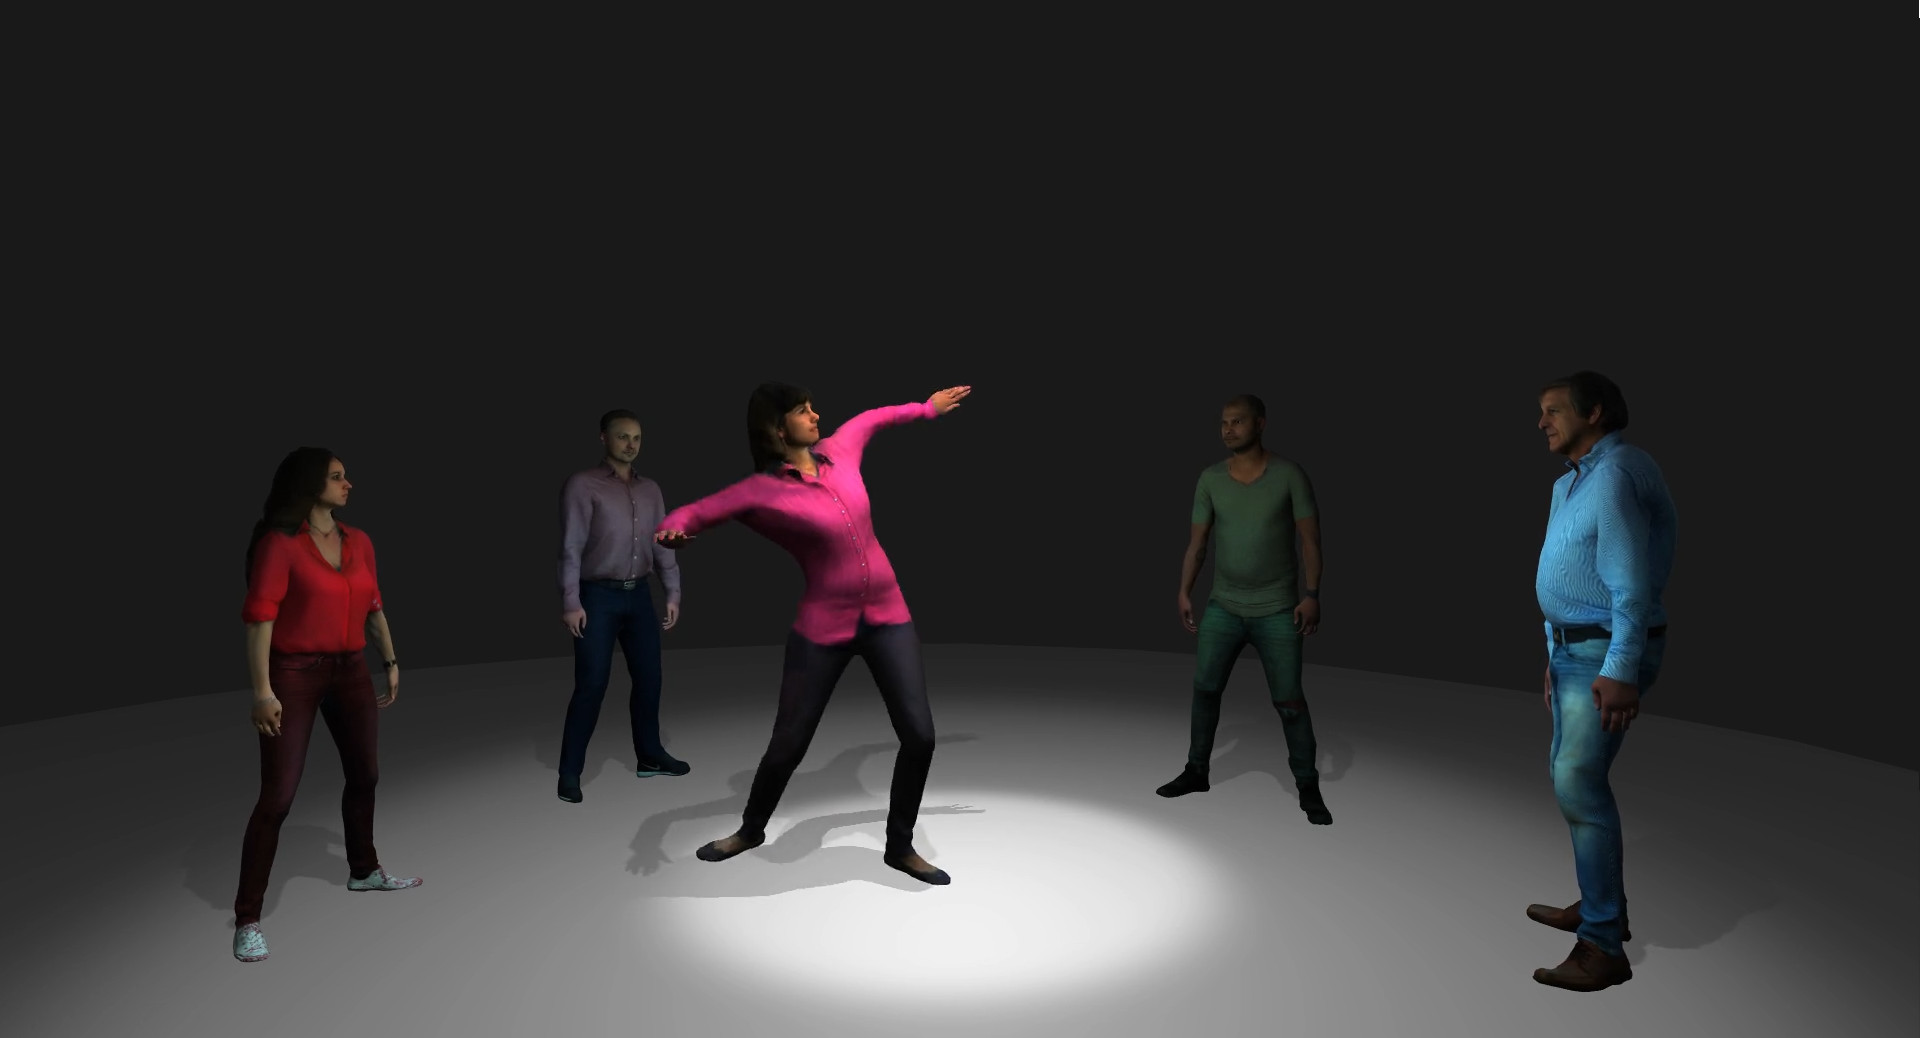 I want a 3d scan for my own avatar – CoVince